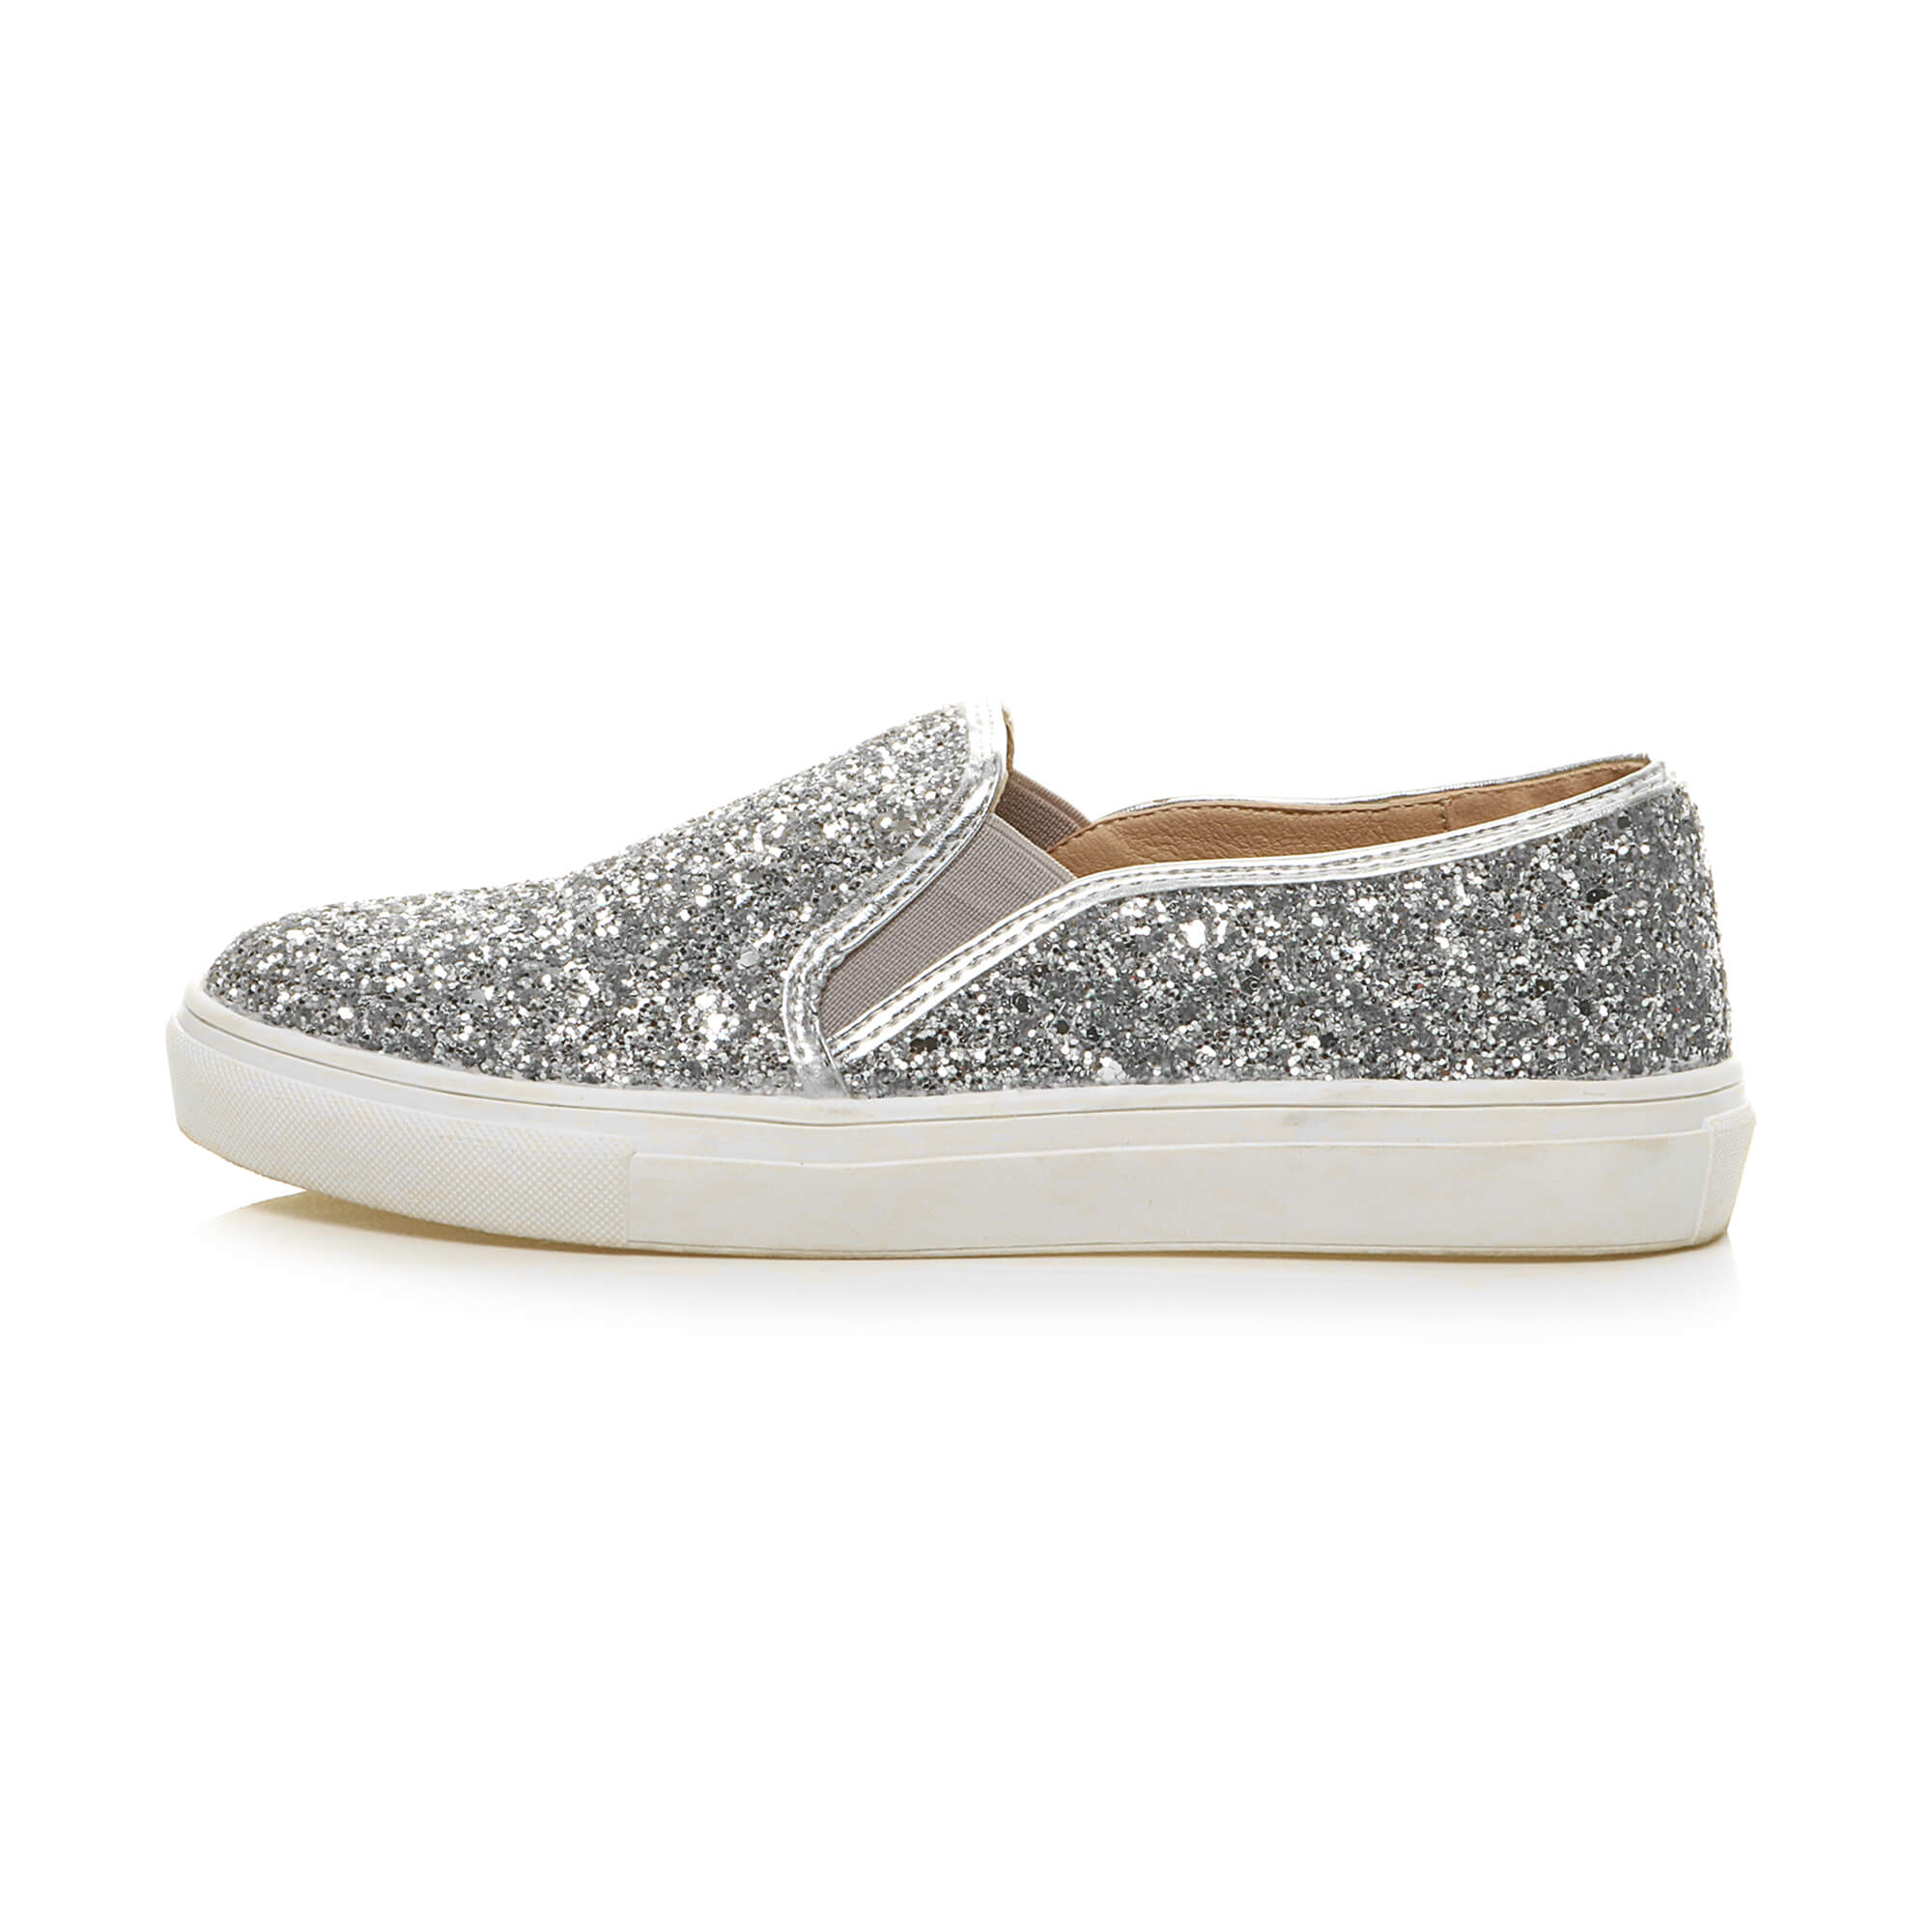 Womens-ladies-flat-glitter-sparkly-slip-on-casual-plimsoles-trainers-shoes-size